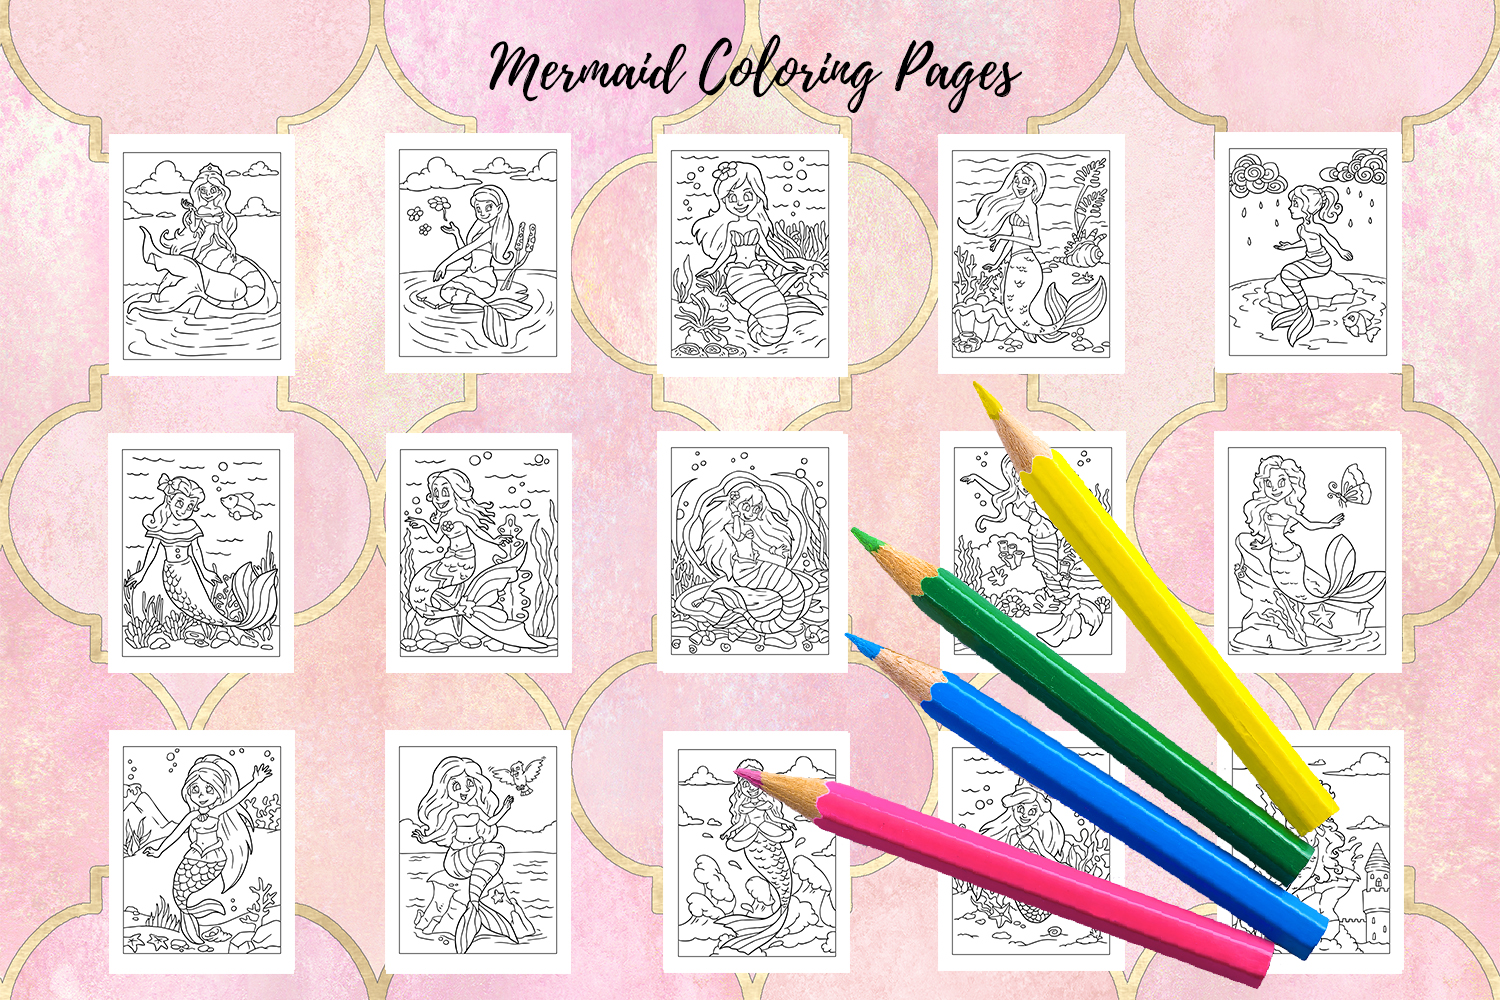 Coloring Pages For Kids - 15 Mermaid Coloring Pages example image 2